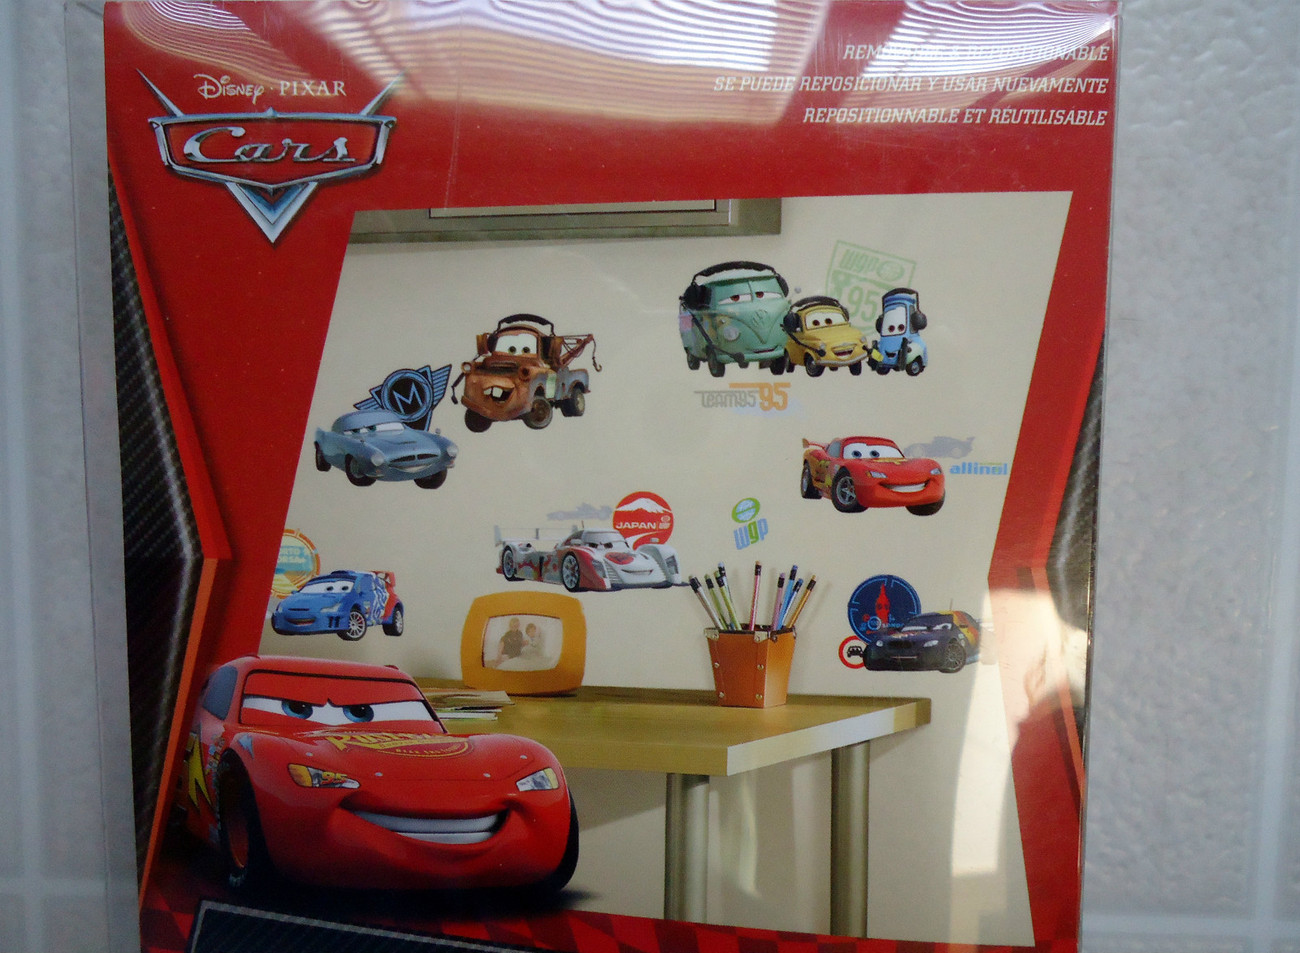 Disney pixar cars peel stick wall decals for playroom for Disney pixar cars wall mural